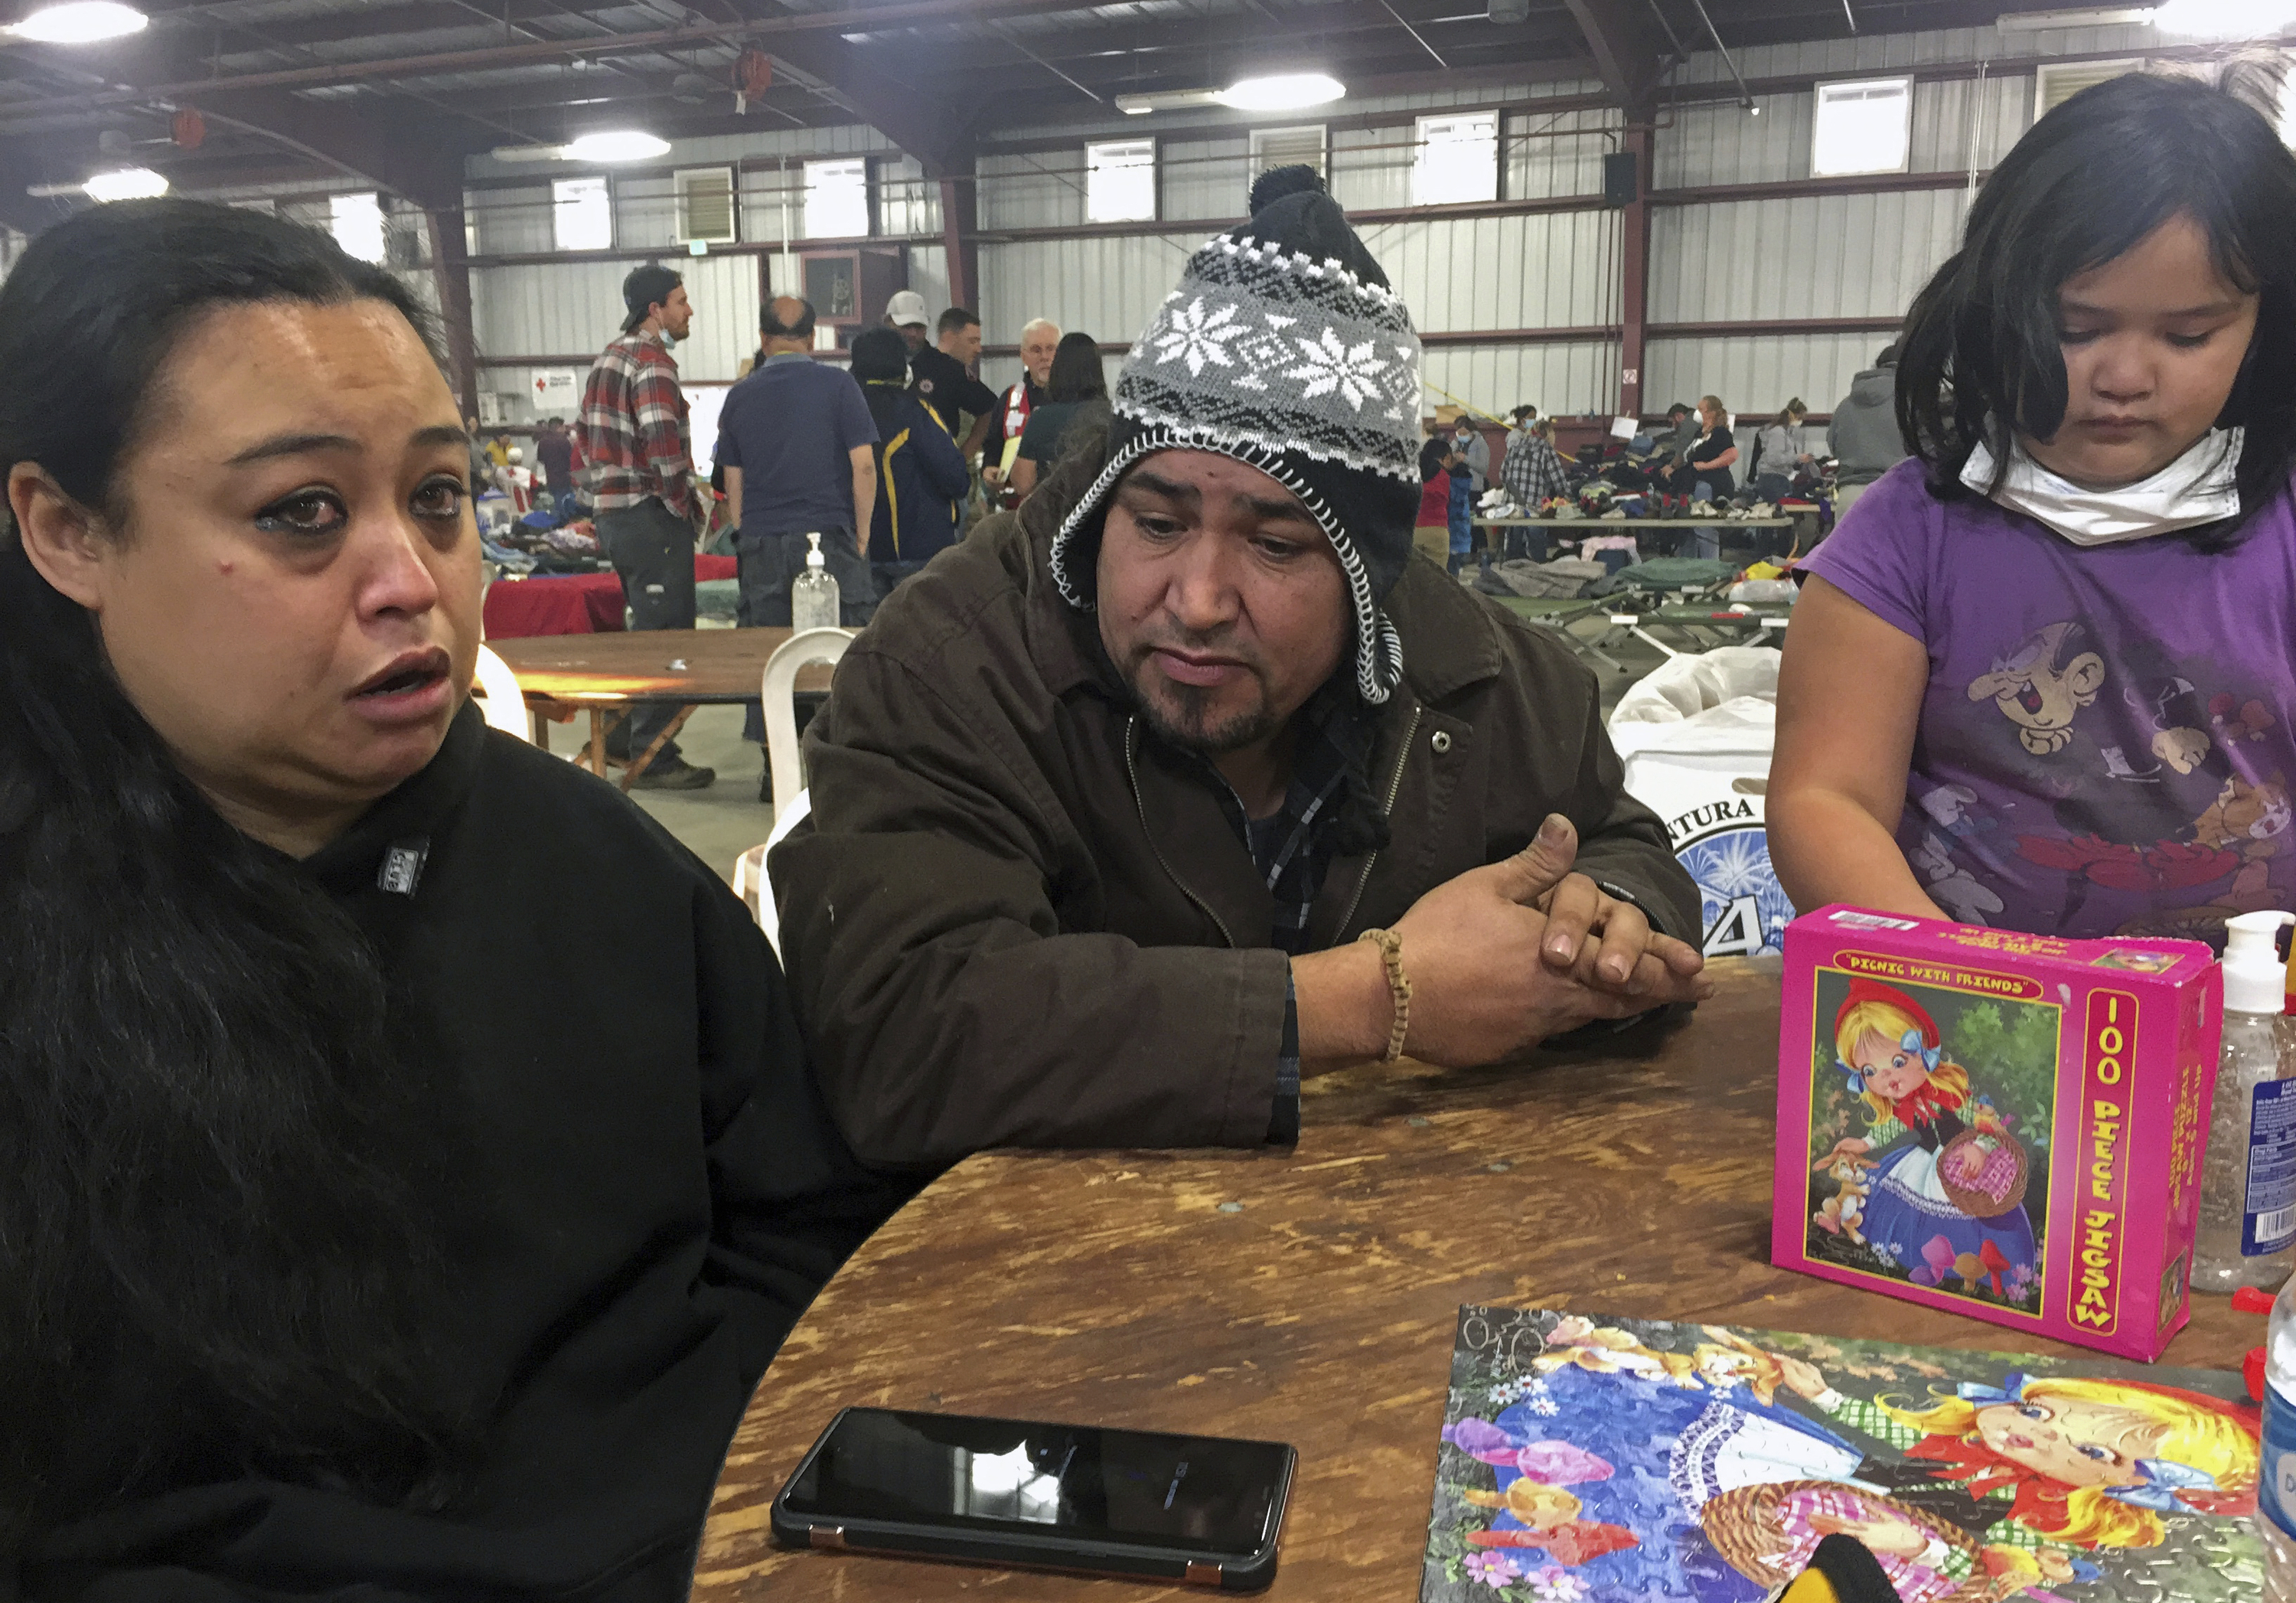 Wildfire survivors Marolyn Romero-Sim left, and Hugo Romero-Rodriguez, middle, and their 9-year-old daughter, Milagros, sit inside the evacuation center at the Ventura County Fairgrounds in Ventura, Calif. Their RV burned up with all their possessions in Ventura, Calif. Wind-driven fires have raced through California communities for the second time in two months, leaving hundreds of homes feared lost and uprooted tens of thousands of people. The most damaging fire is in Ventura County northwest of Los Angeles, where more than 100 square miles (259 sq. kilometers) and numerous homes have burned. (AP Photo/Amanda Lee Myers)